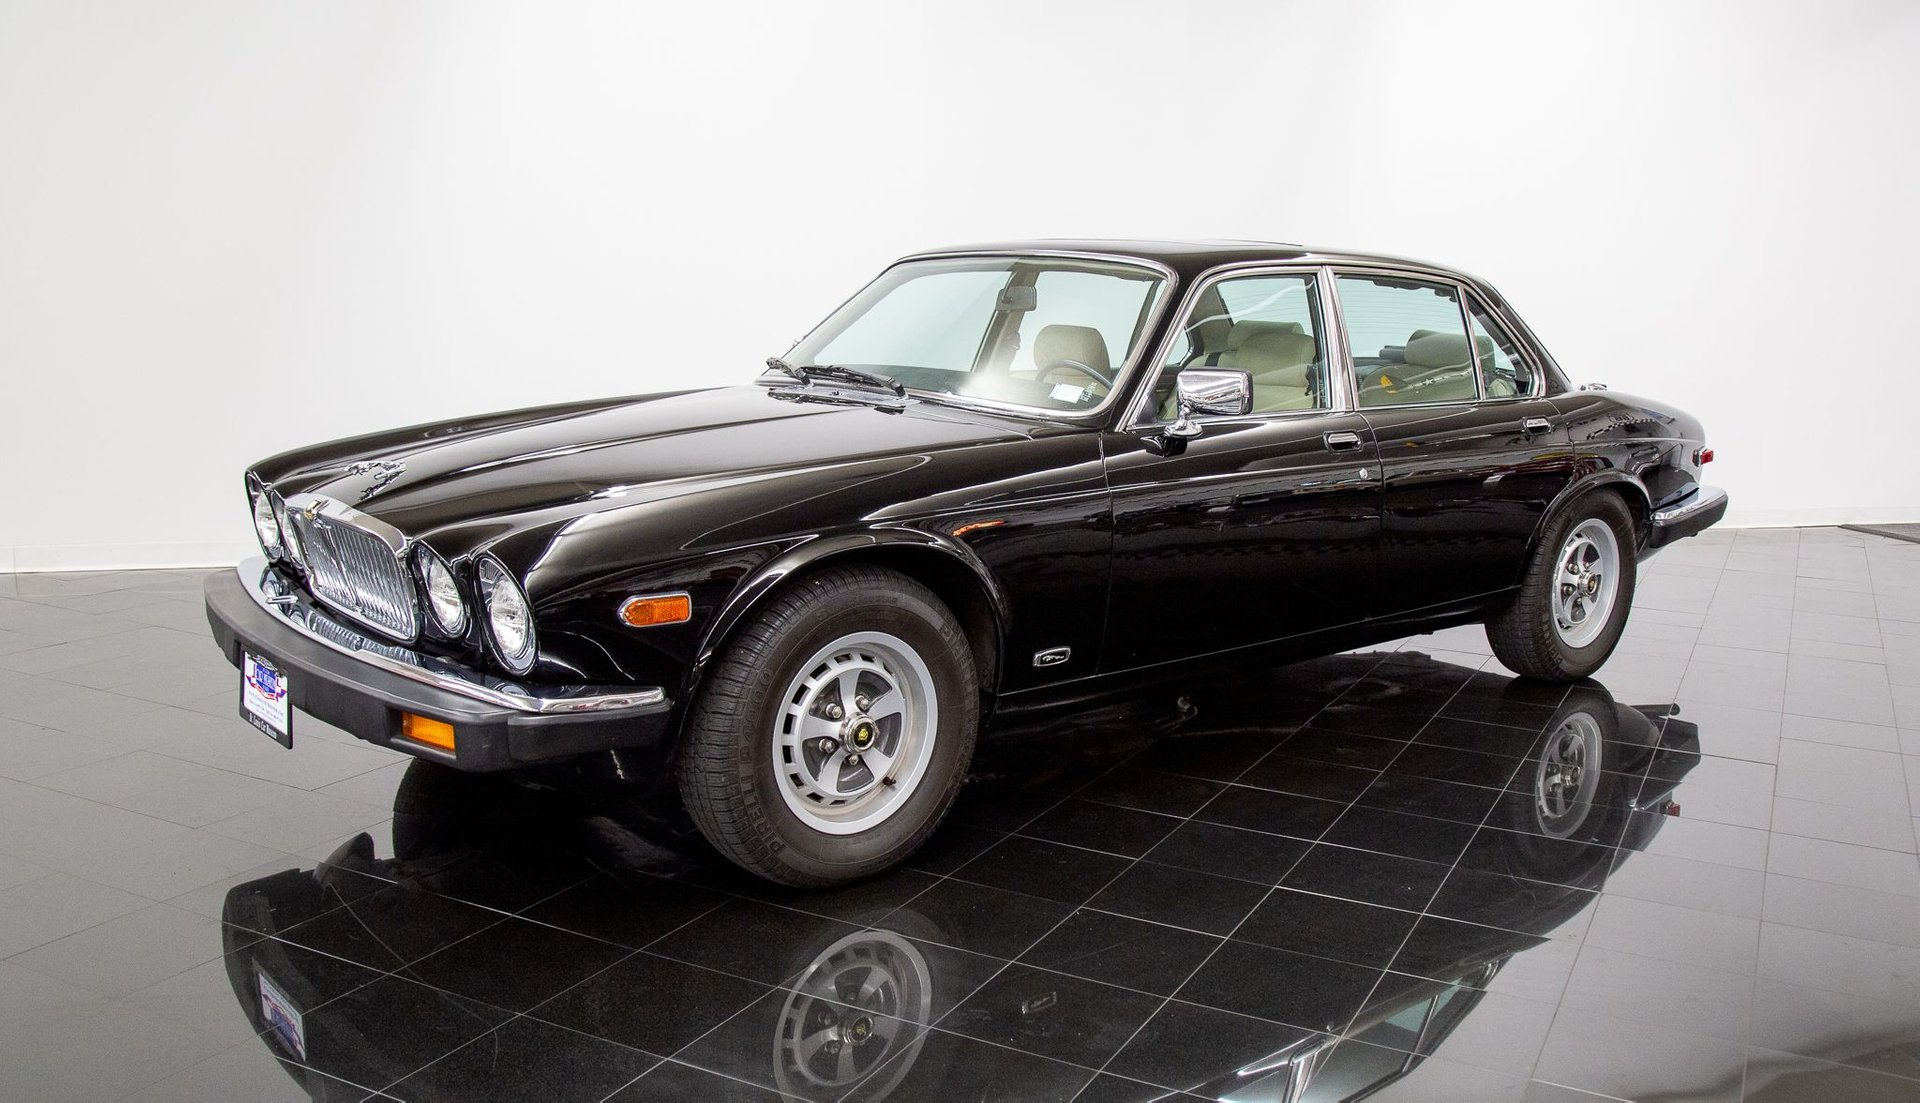 1986 jaguar xj6 vanden plas sedan